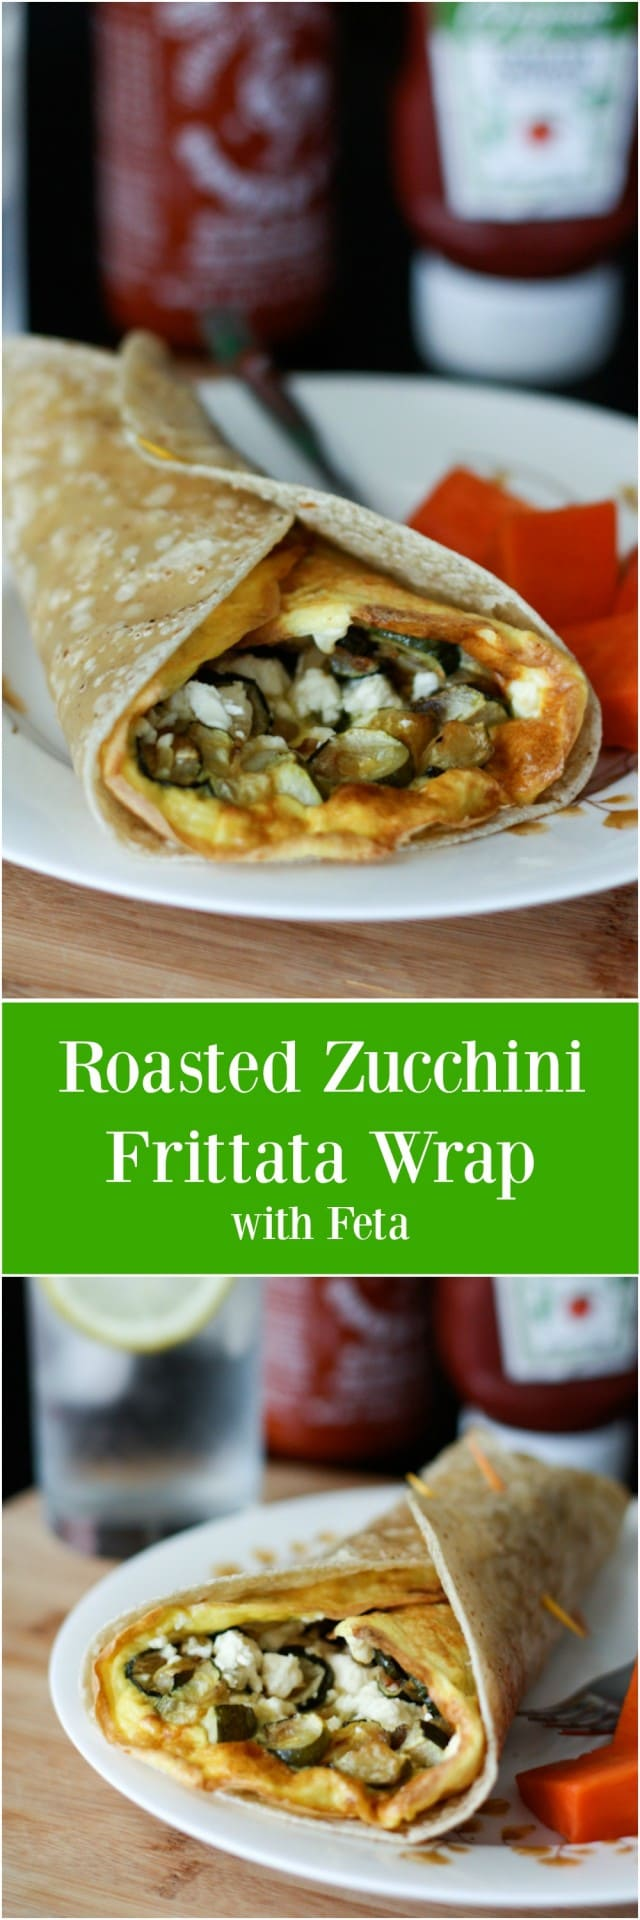 Use up your leftover roasted vegetable in frittatas for an easy meal. This Roasted Zucchini Frittata Wrap is a hearty and healthy vegetarian lunch or dinner!